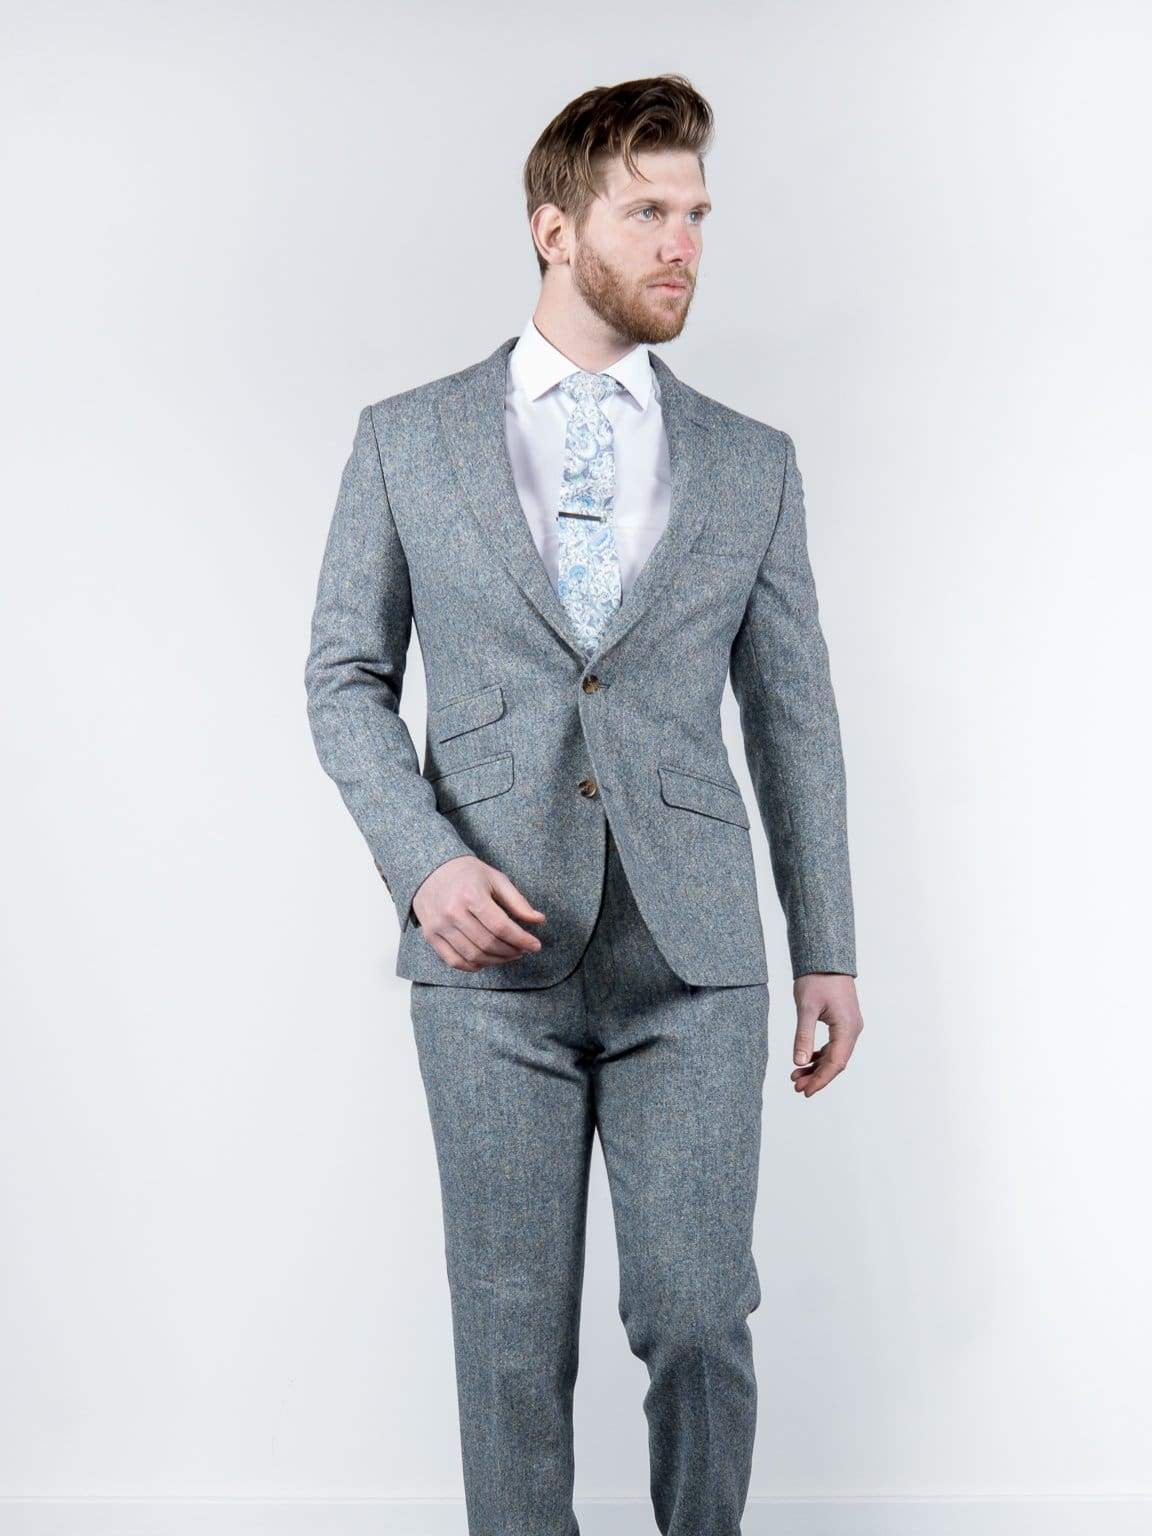 Ice Blue 100% Donegal Wool Tweed Blazer - 38S - Suit & Tailoring